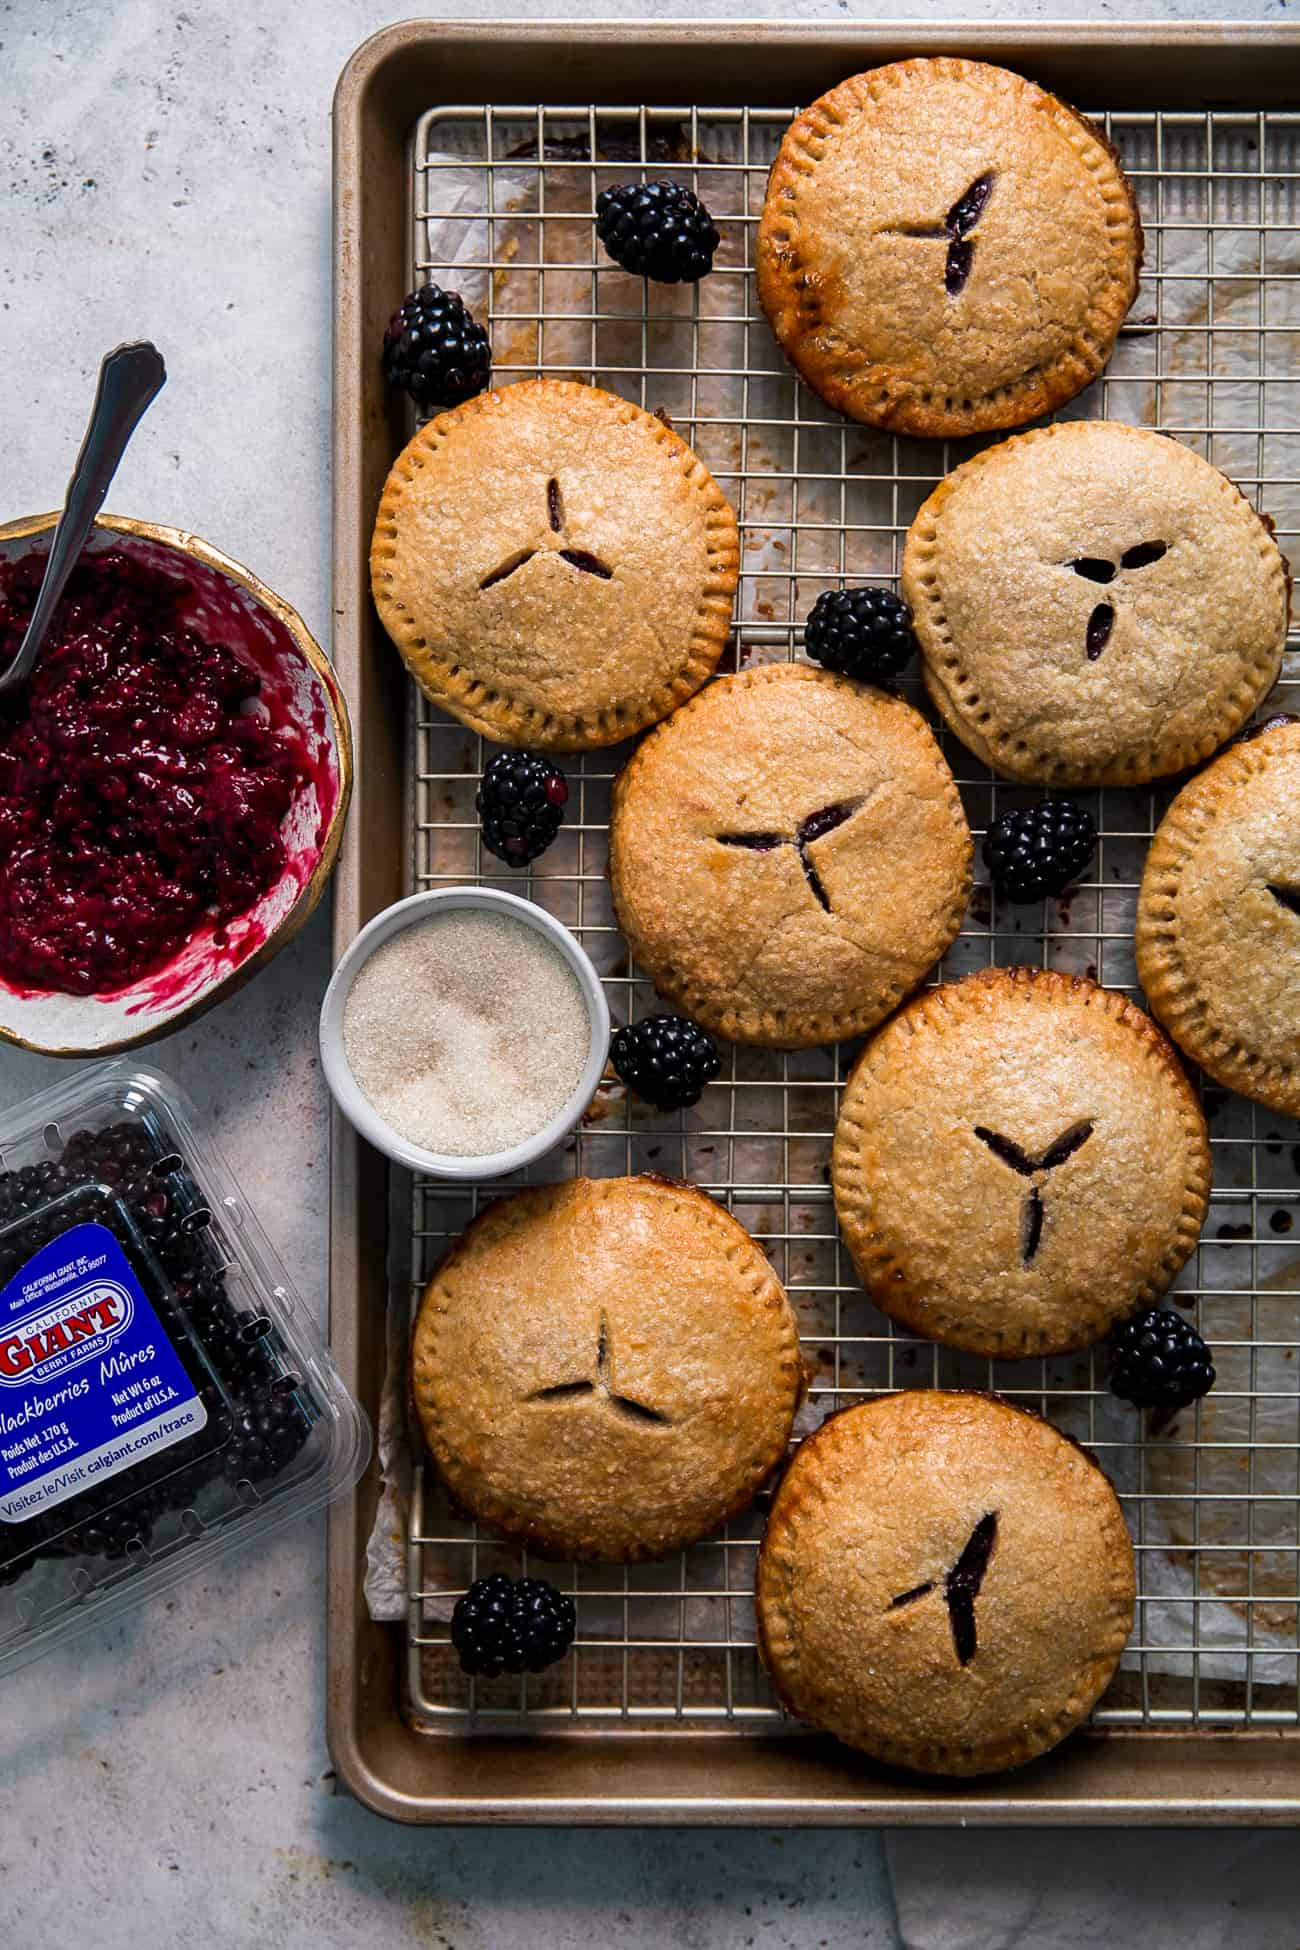 blackberry hand pies on wire rack, next to bowl of sugar, jam and carton of blackberries